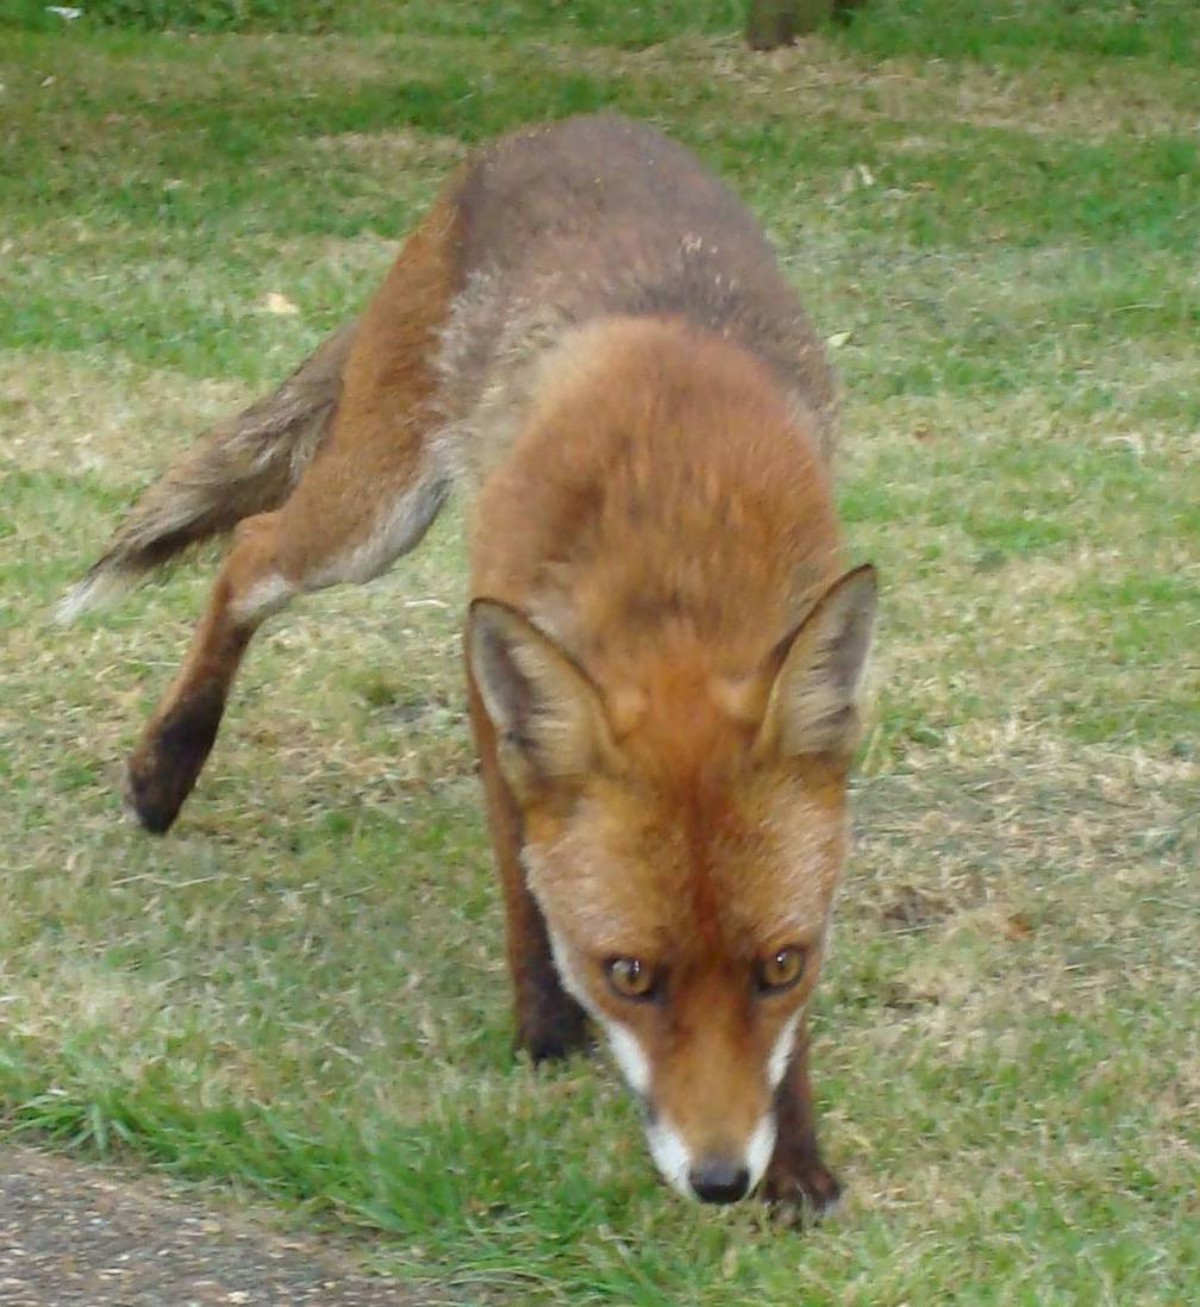 A fox hid under the woman's bed while she was watering plants in her garden